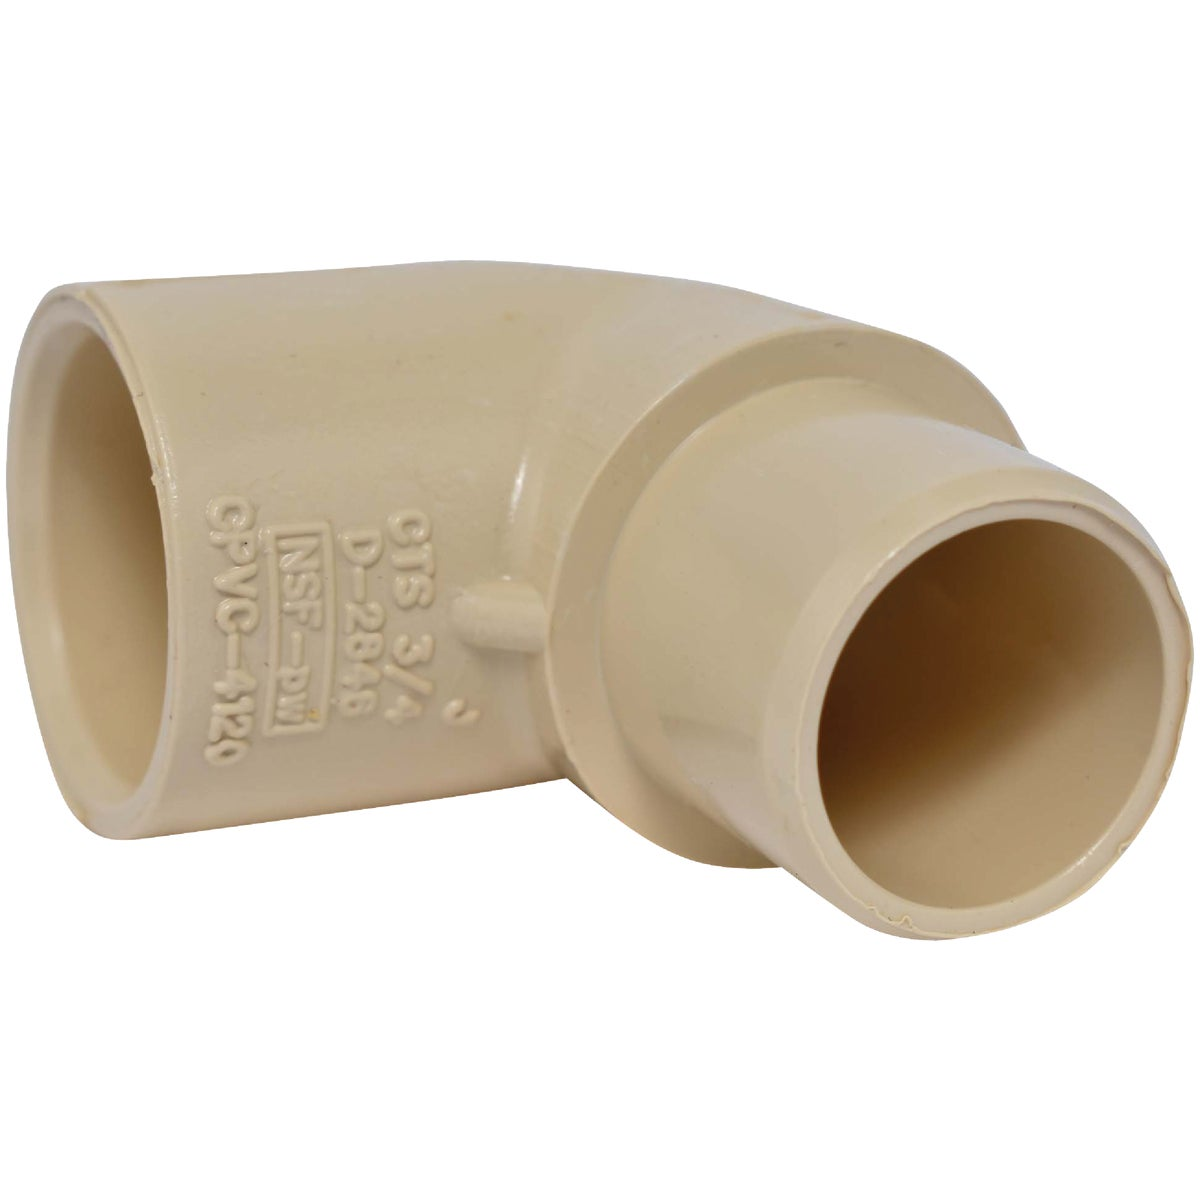 "3/4"" CPVC 90D STRT ELBOW - 52907 by Genova Inc"